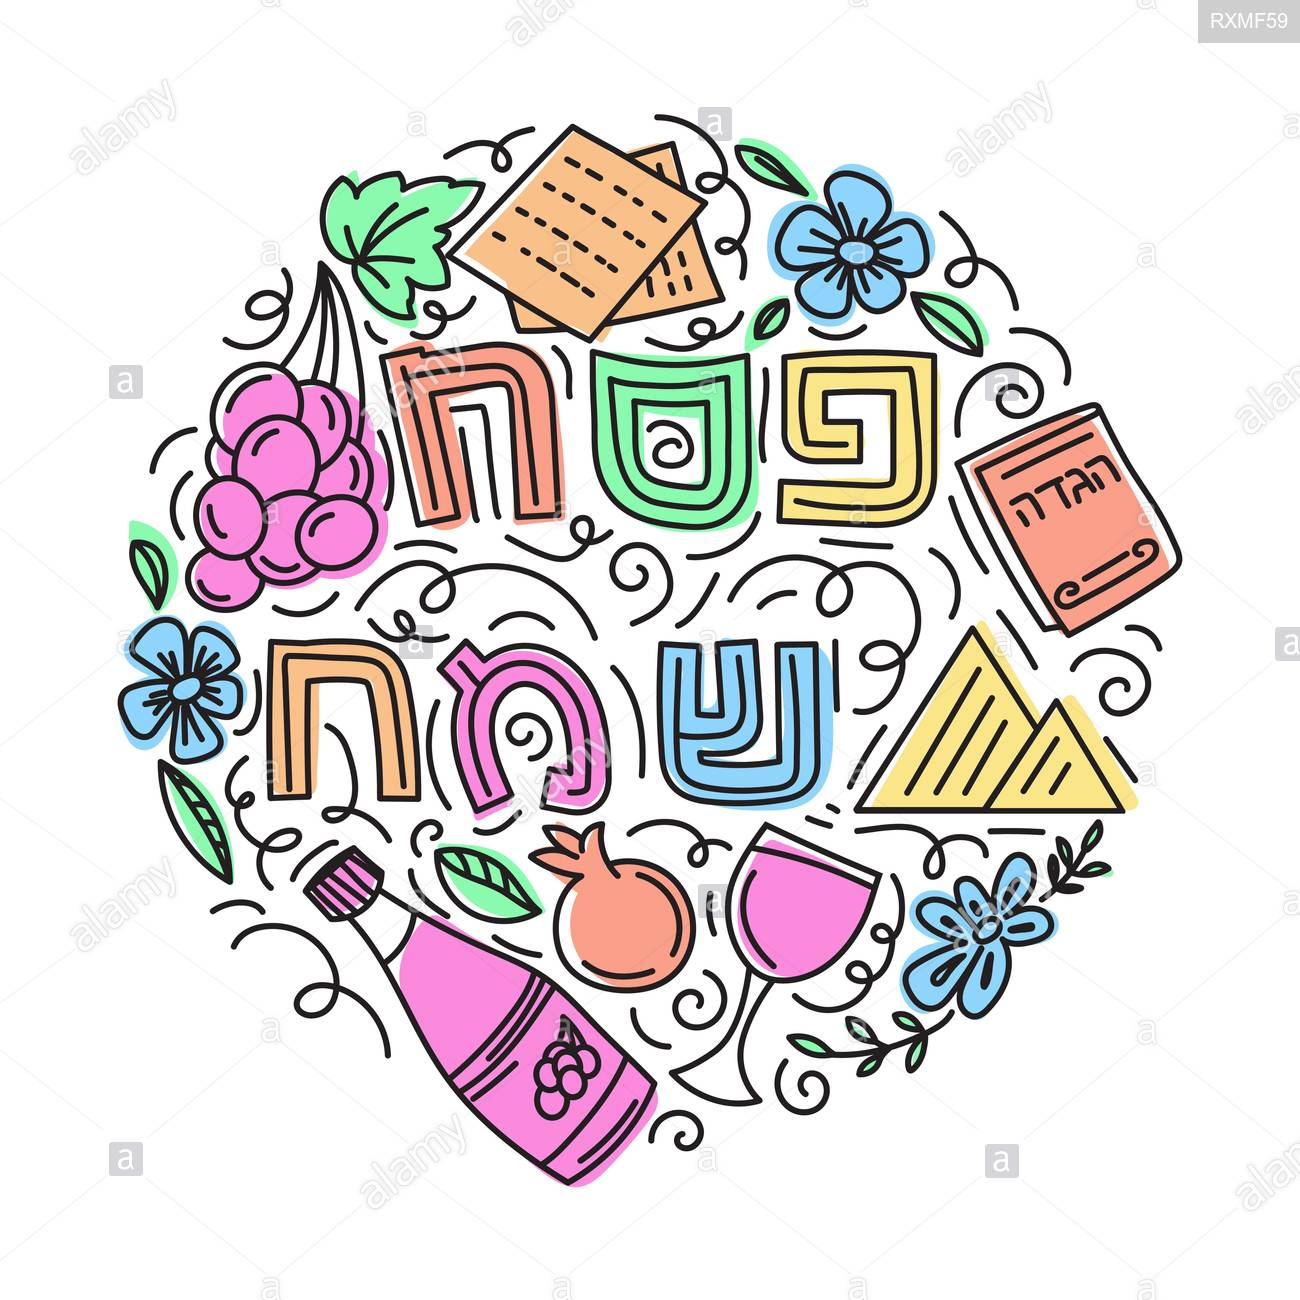 Passover greeting card (Jewish holiday Pesach). Hebrew text: happy.